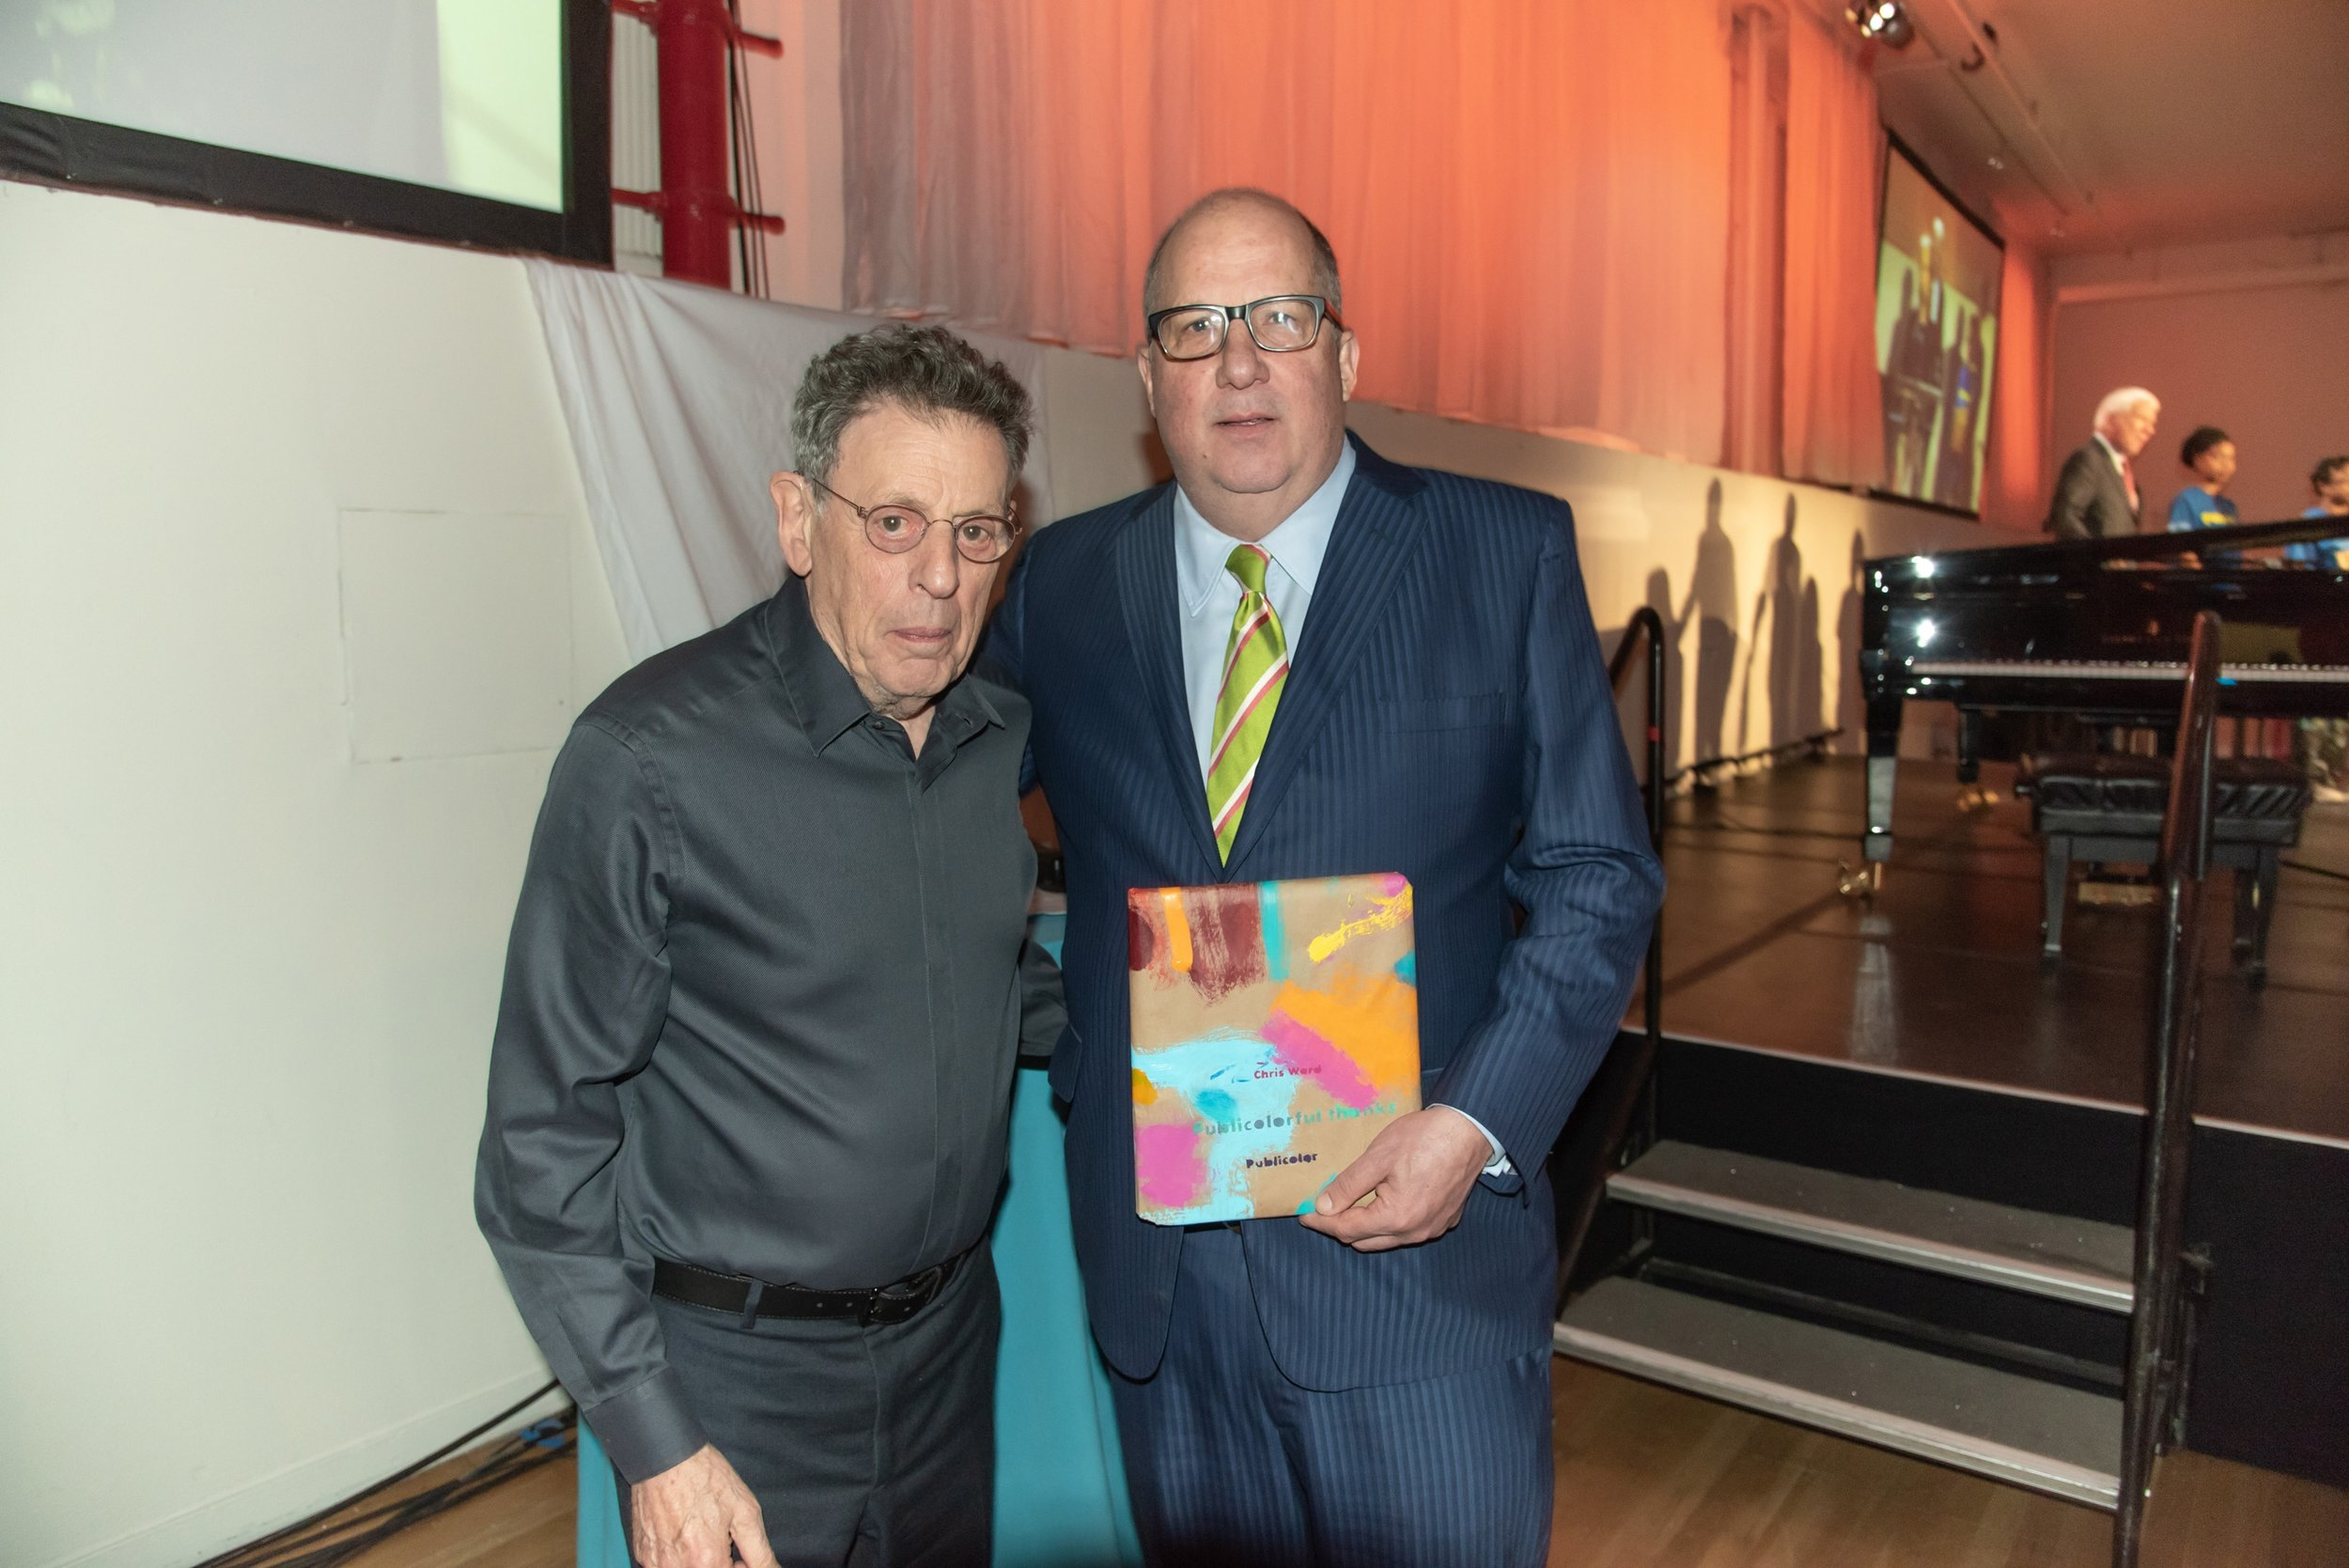 anniewatt_66217-Philip Glass, Chris Ward.jpg